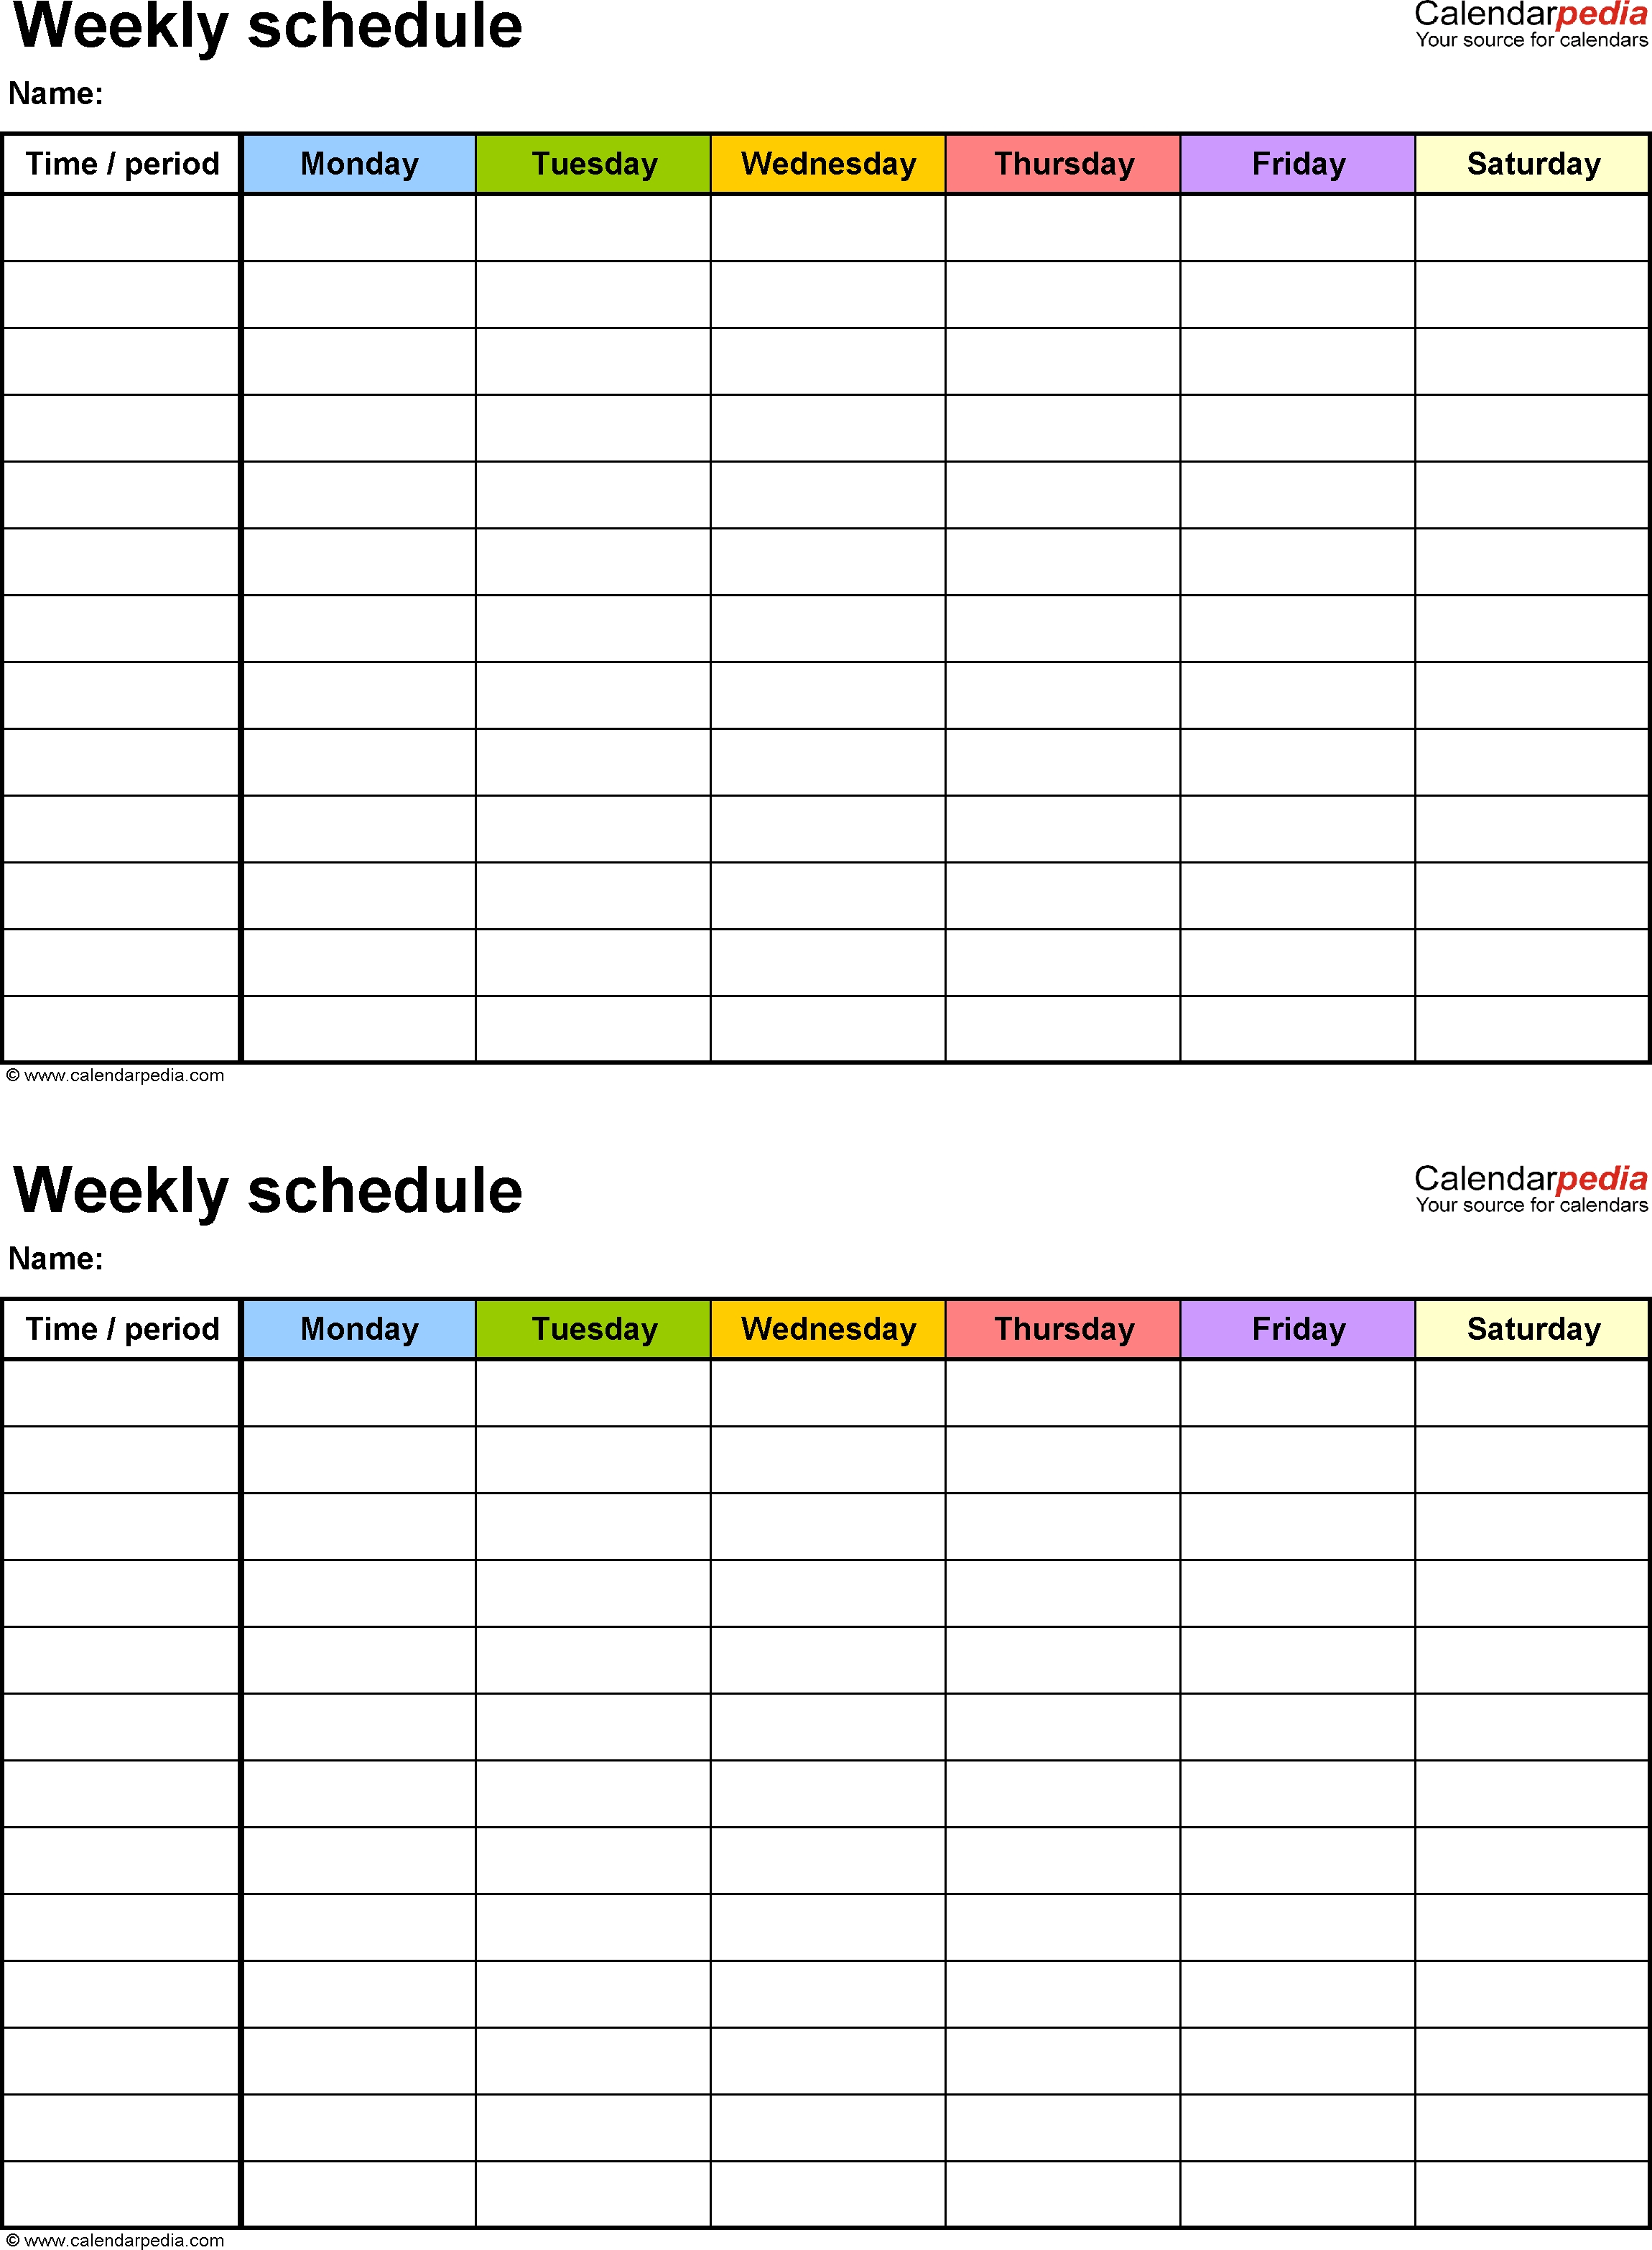 Free Weekly Schedule Templates For Excel - 18 Templates inside Blank Schedule Sheet With Times